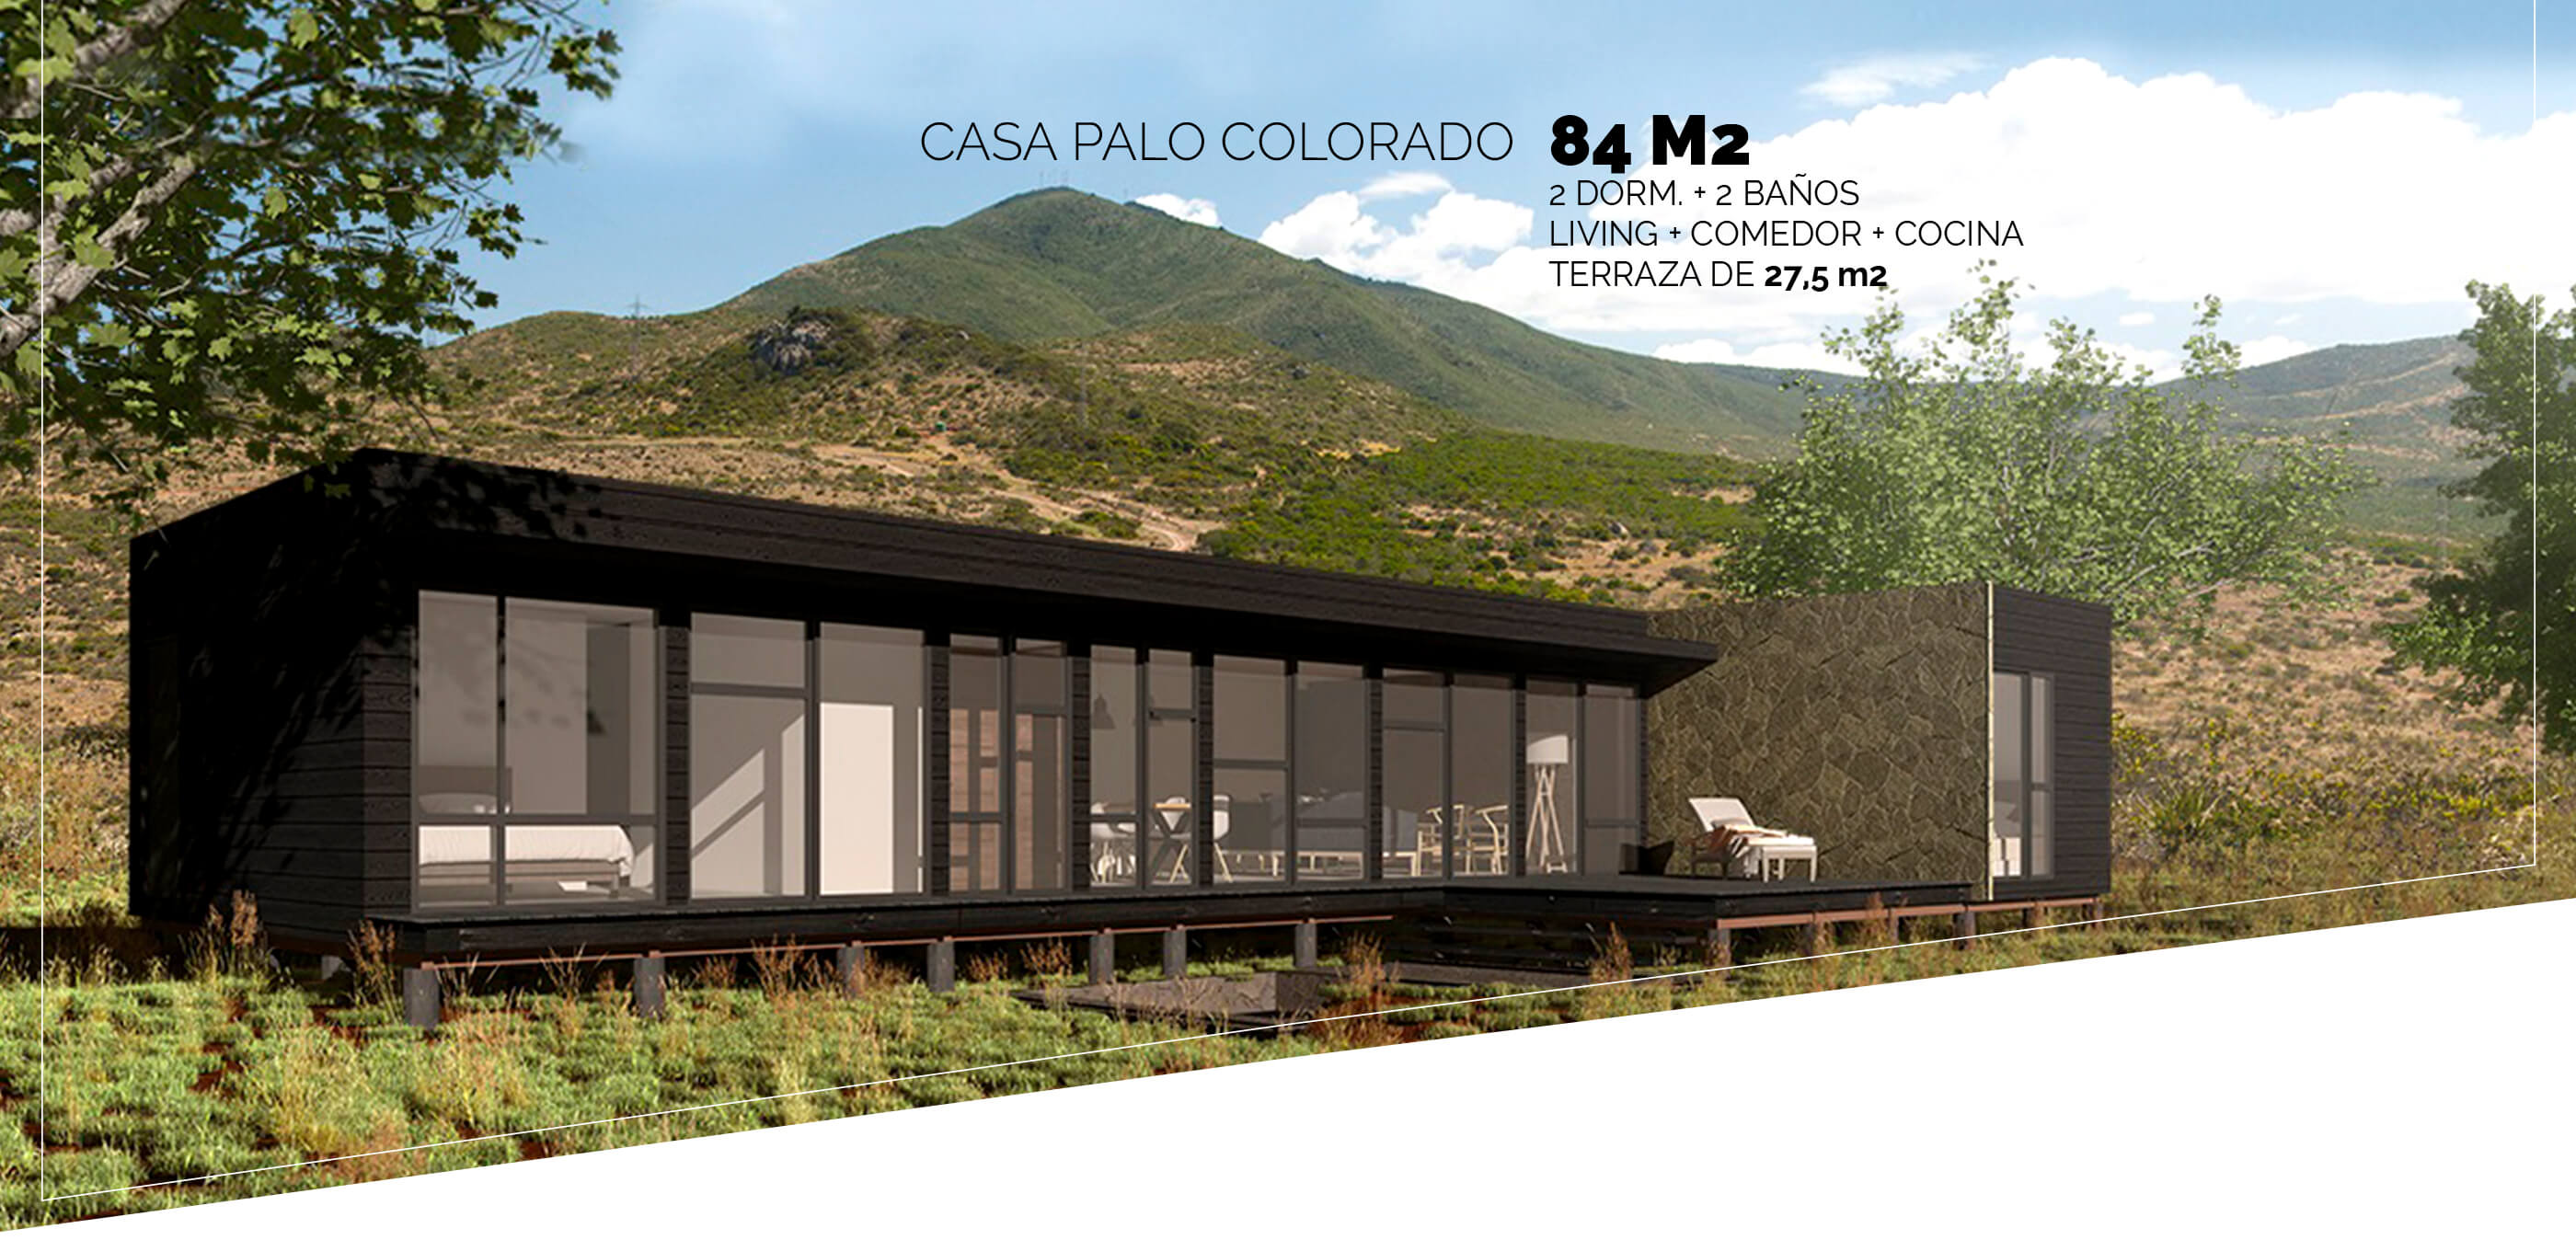 Casa Palo Colorado